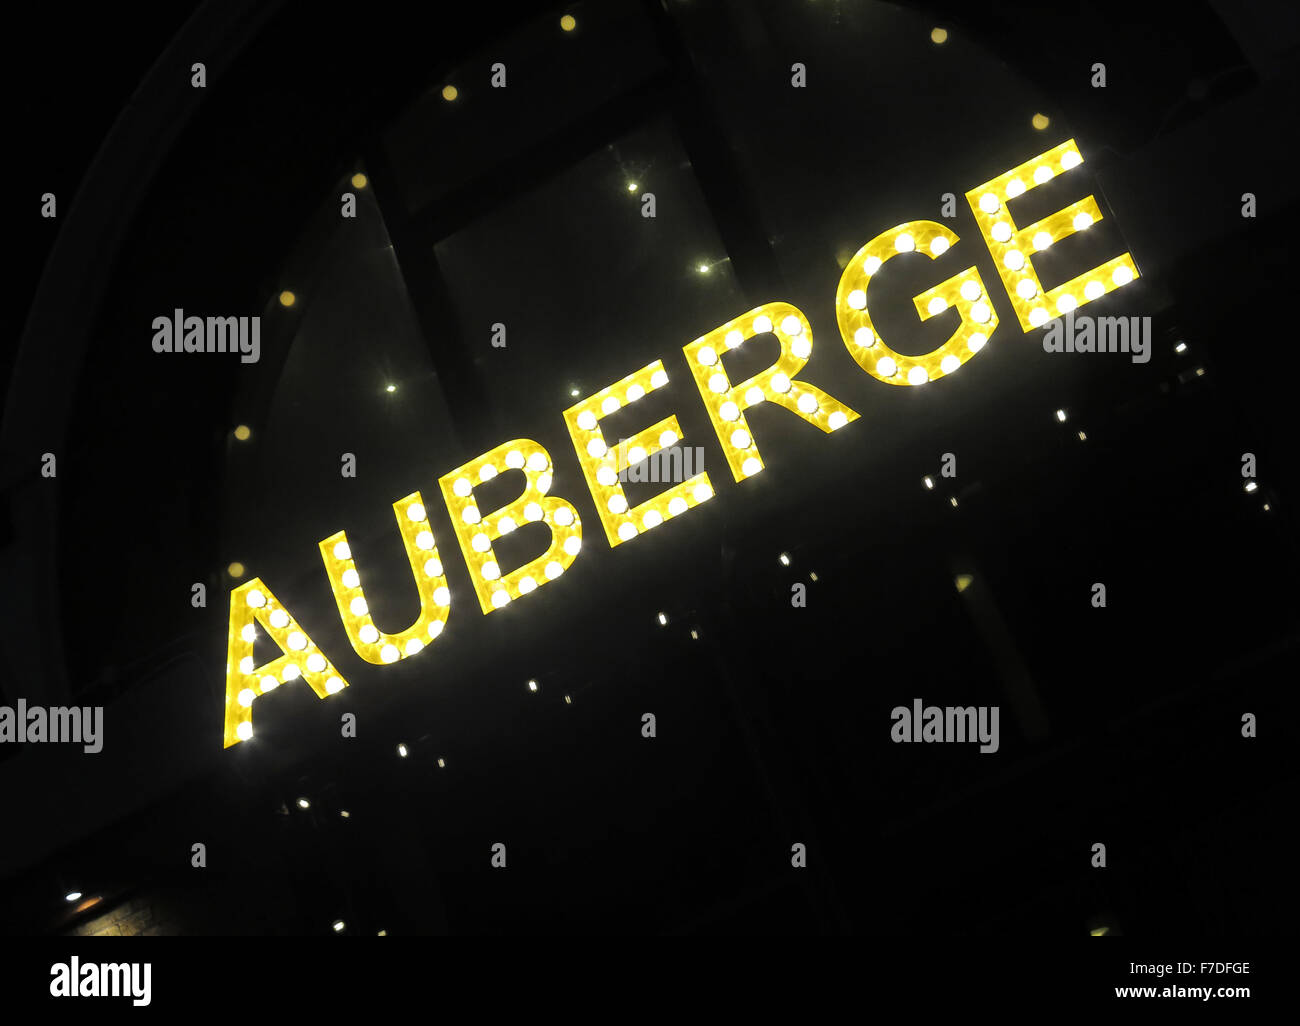 France,French,food,sign,night,dusk,at,auberge,auberge pub restaurant waterloo,london,restaurant,sandell,st,street,waterloo,yellow,star,stars,food,at night,GoTonySmith,Buy Pictures of,Buy Images Of